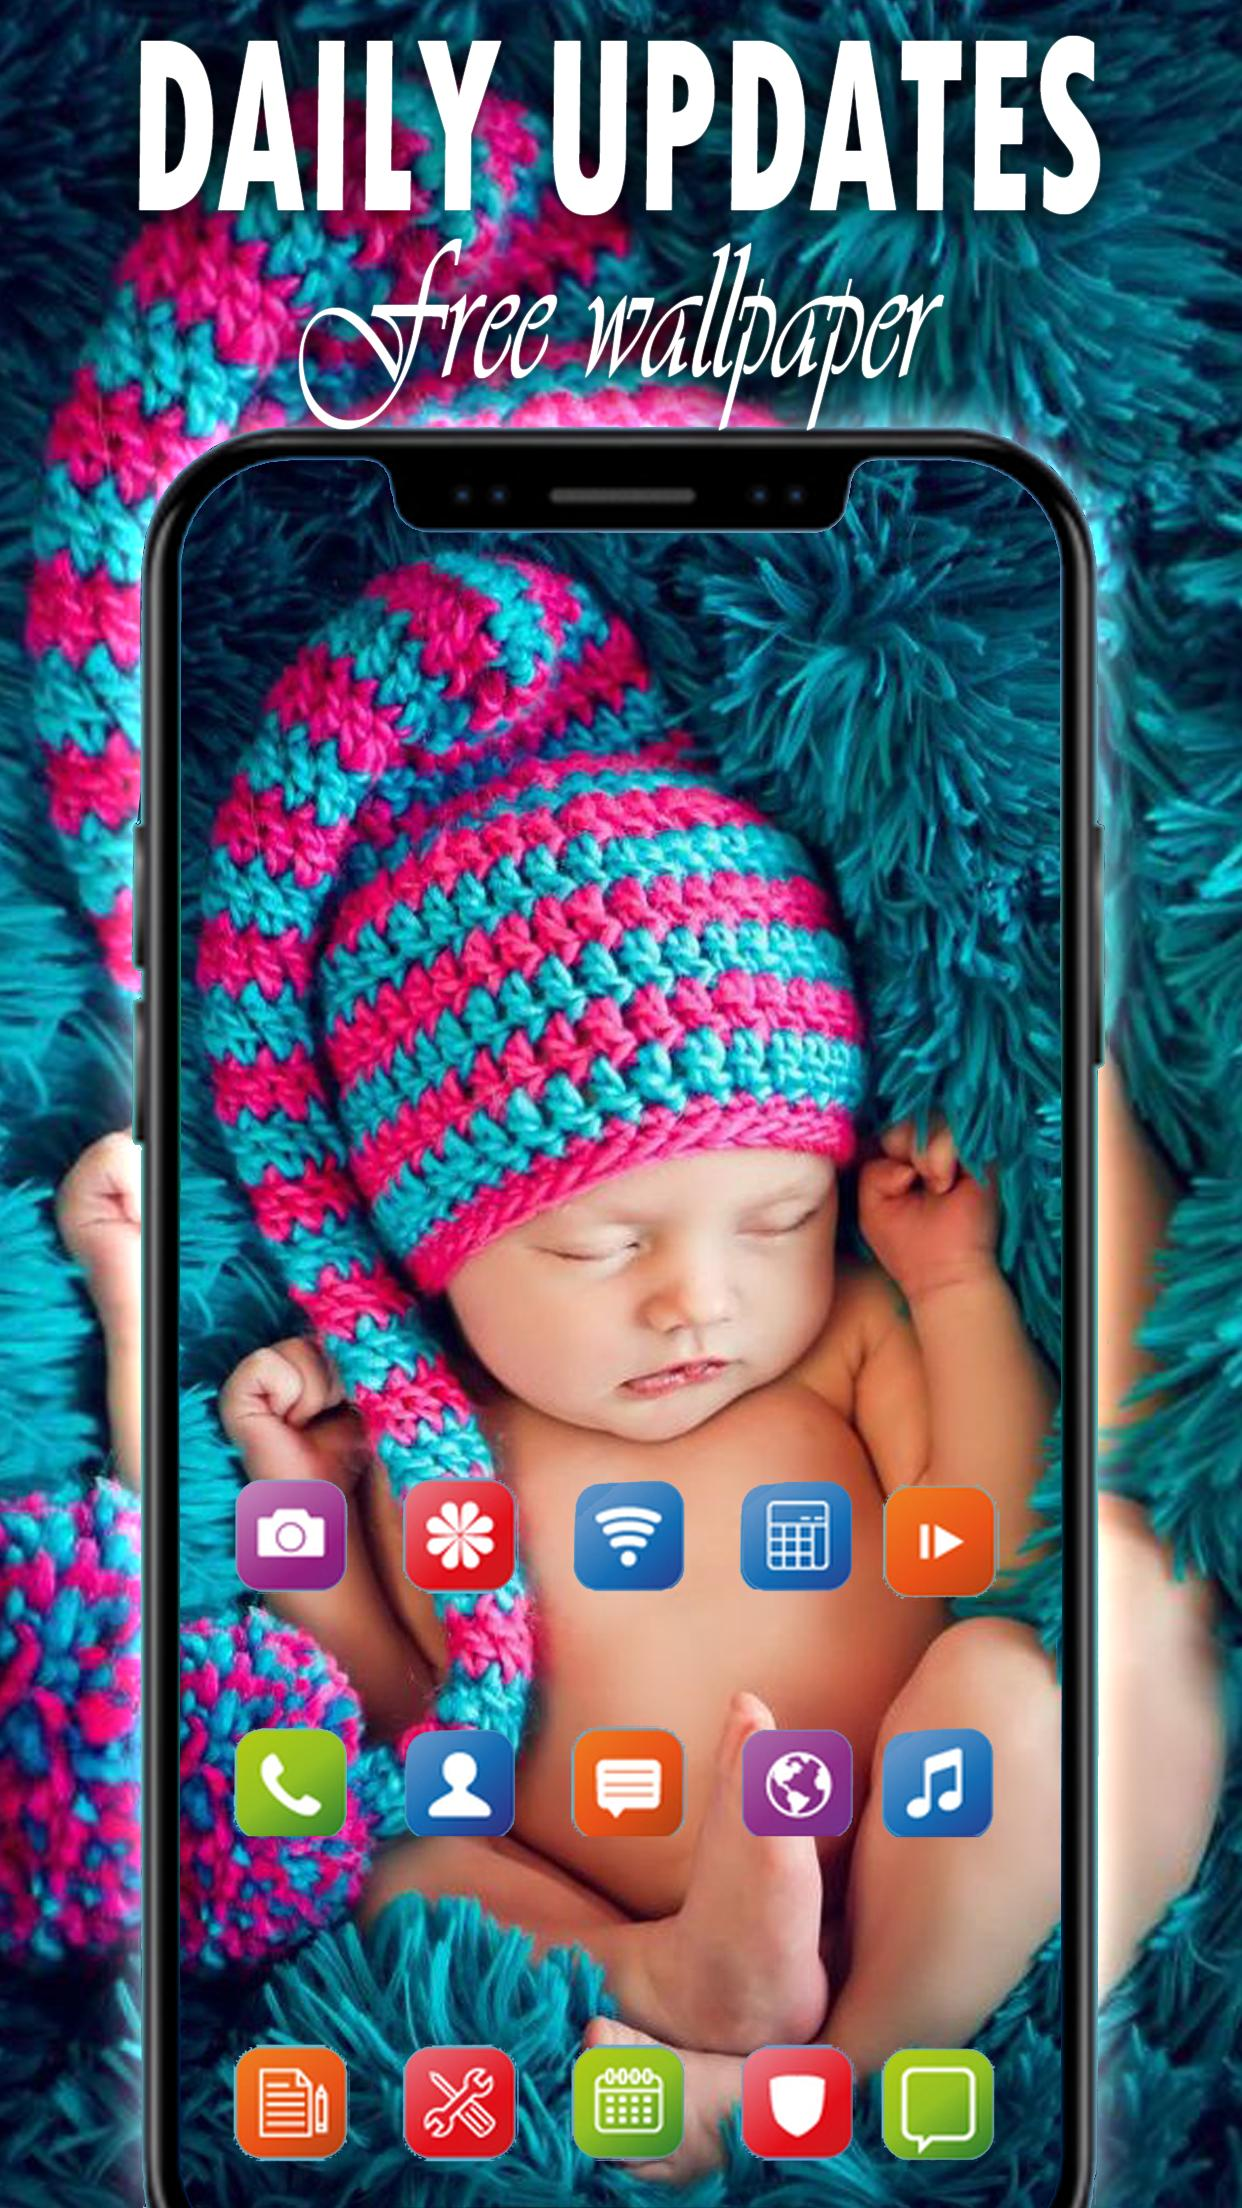 Cute Baby Girl Wallpaper Hd 4k Backgrounds For Android Apk Download